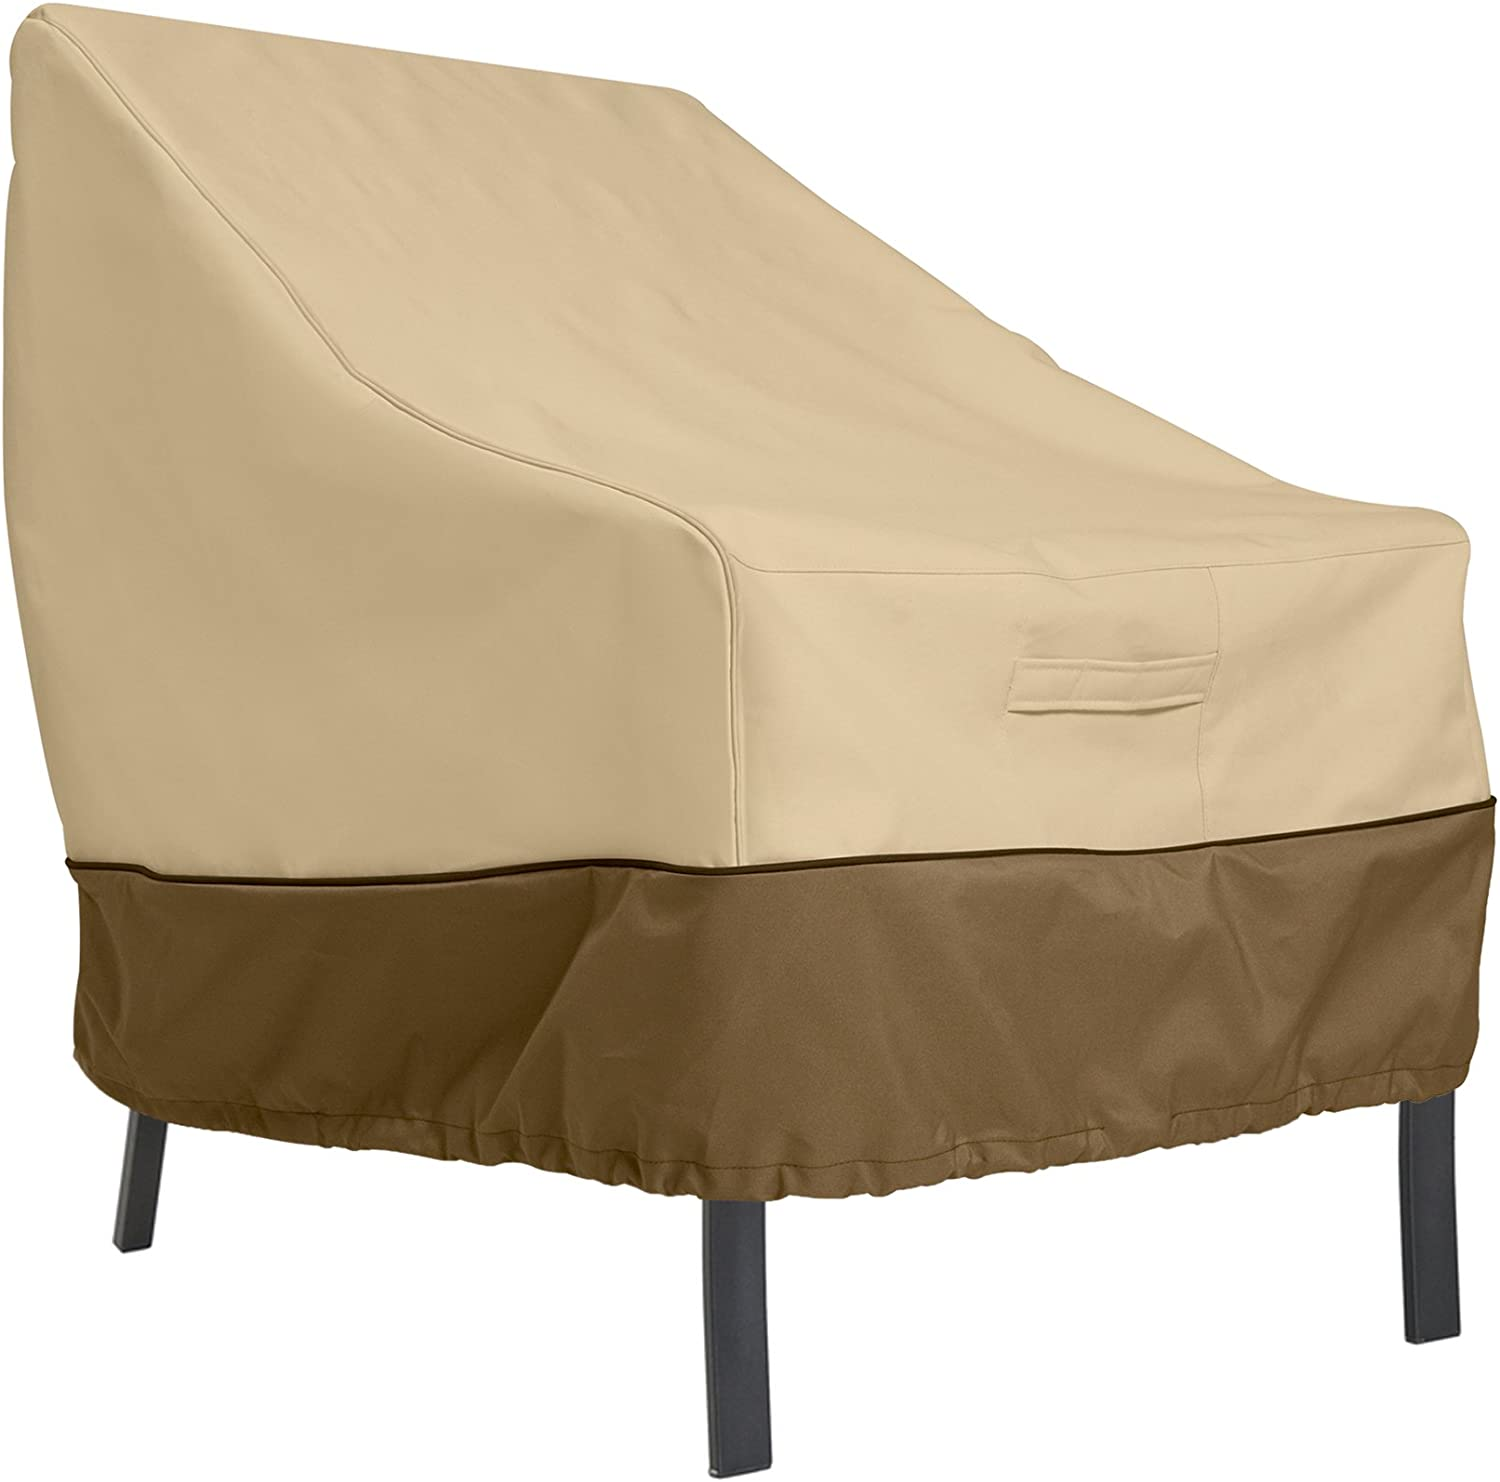 Classic Accessories Veranda Water-Resistant 38 Inch Patio Lounge Chair Cover : Veranda Furniture Covers : Garden & Outdoor